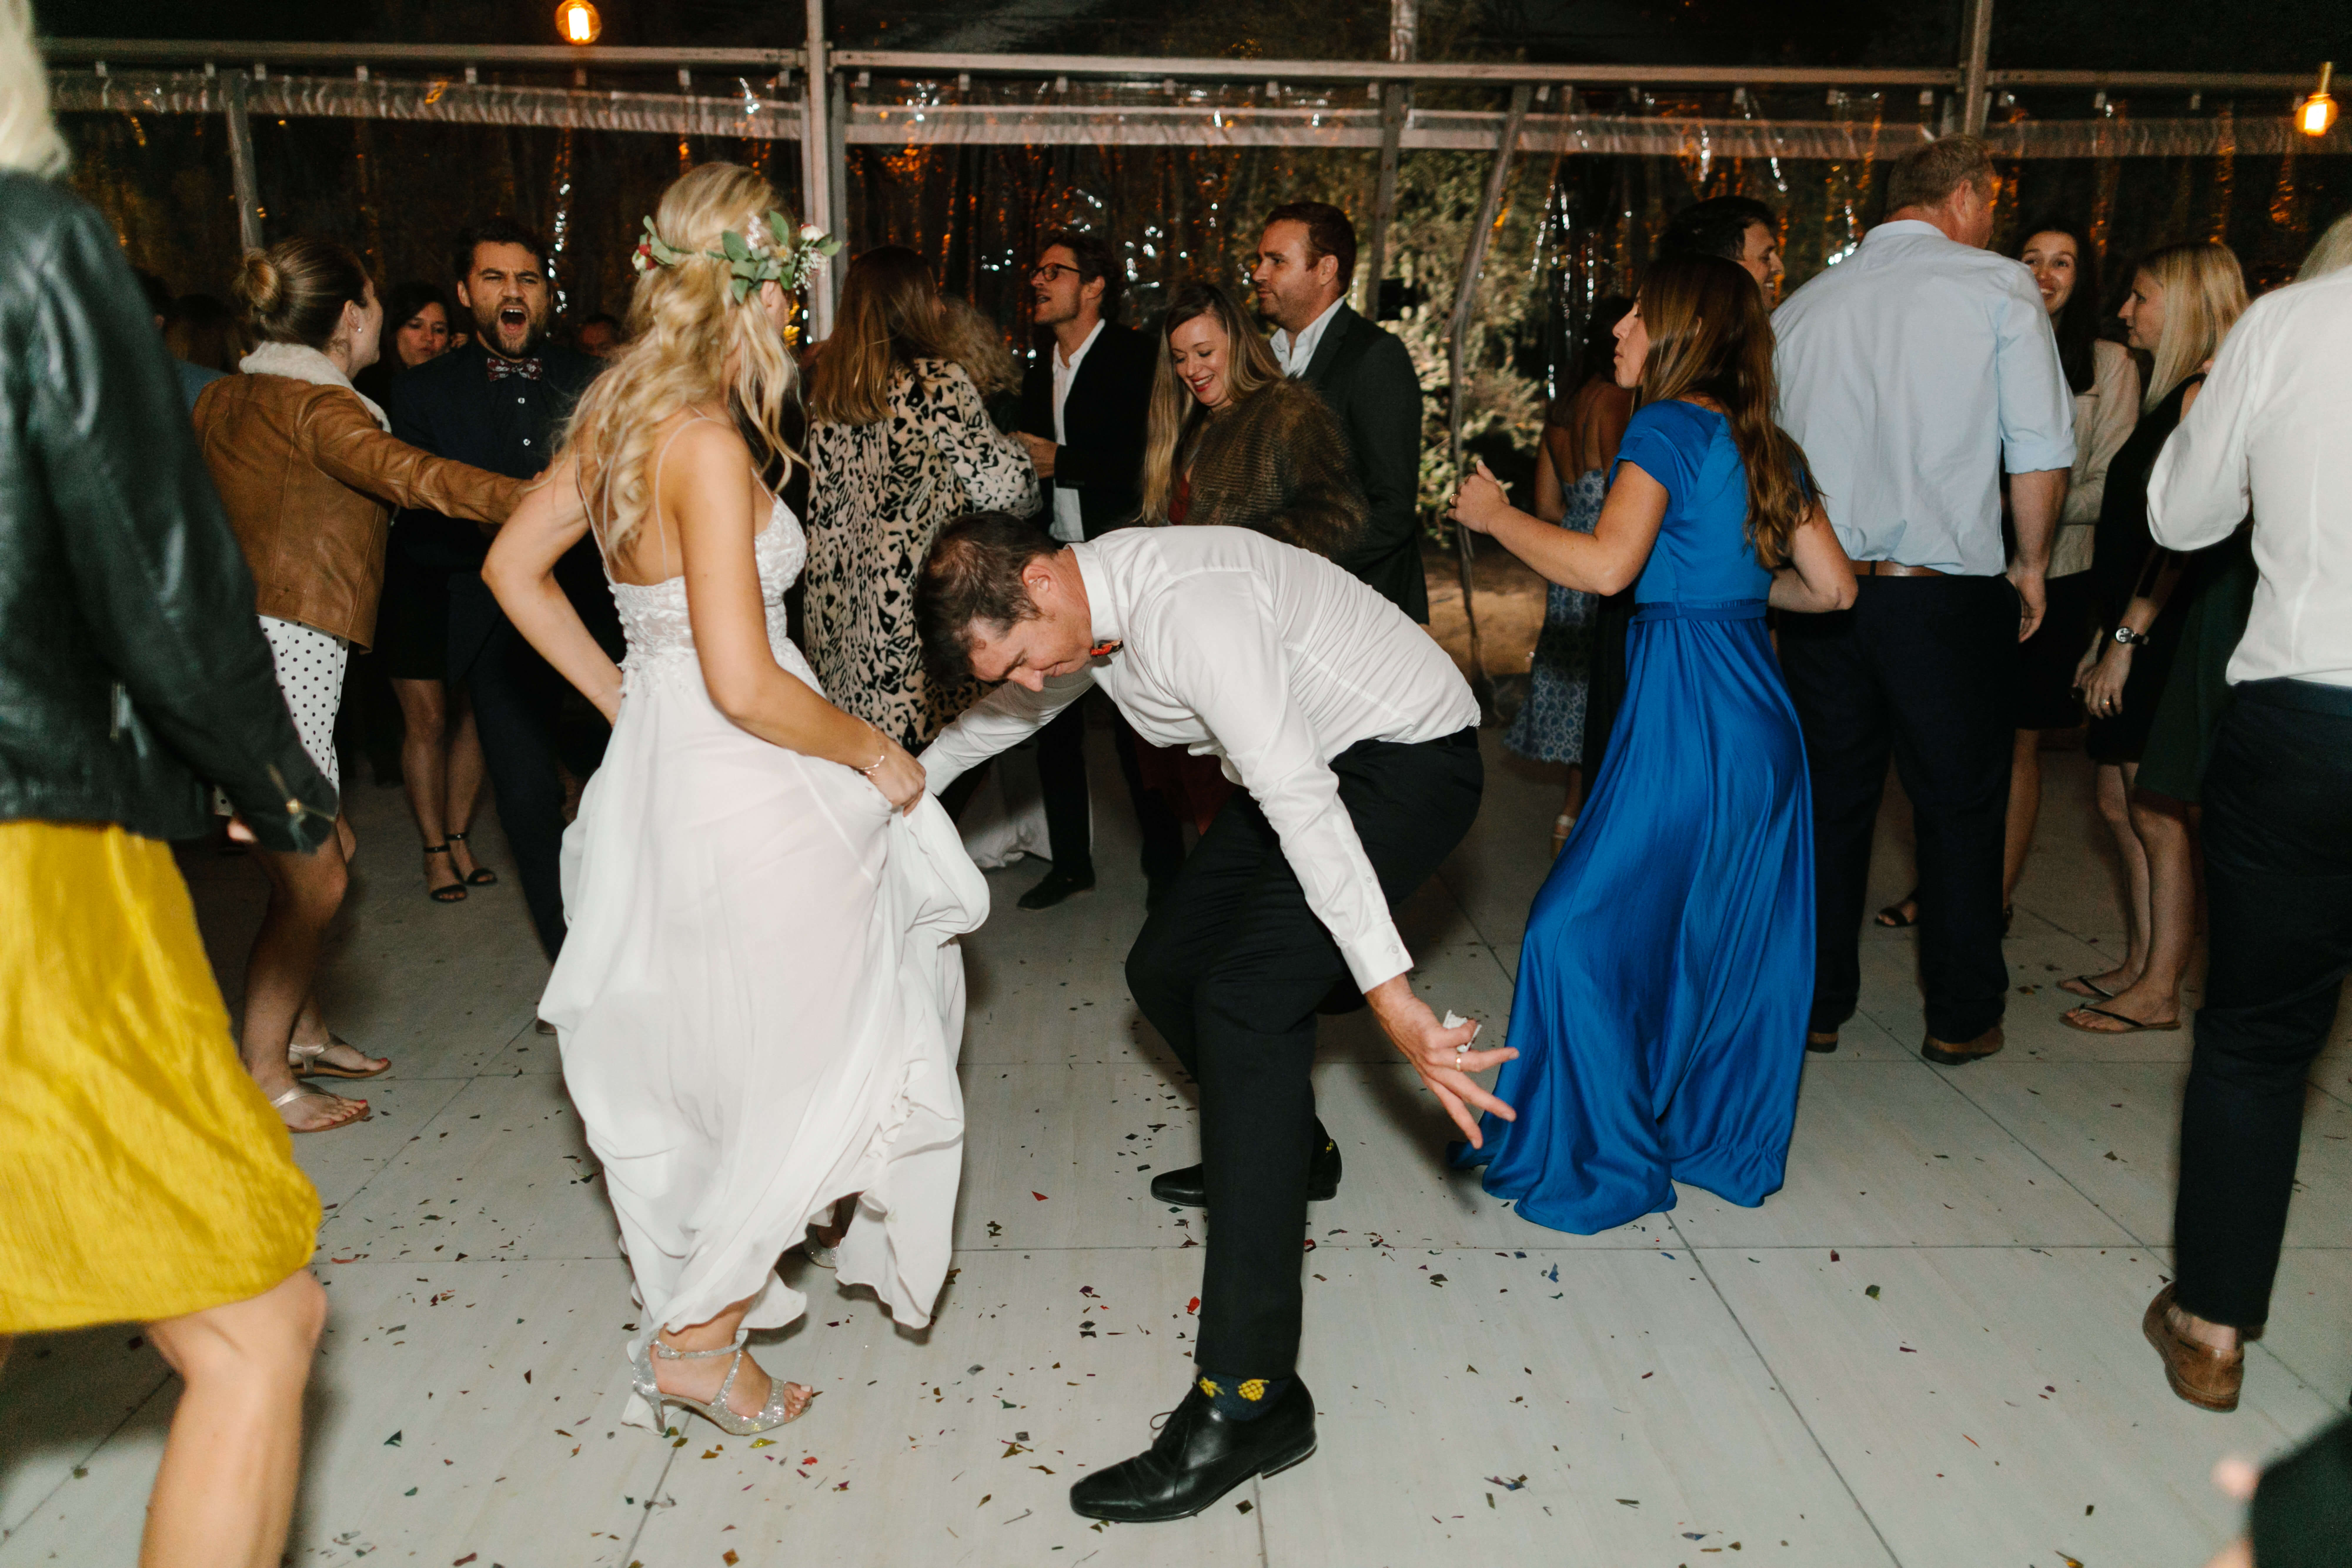 A bride and groom dancing like crazy at their wedding.